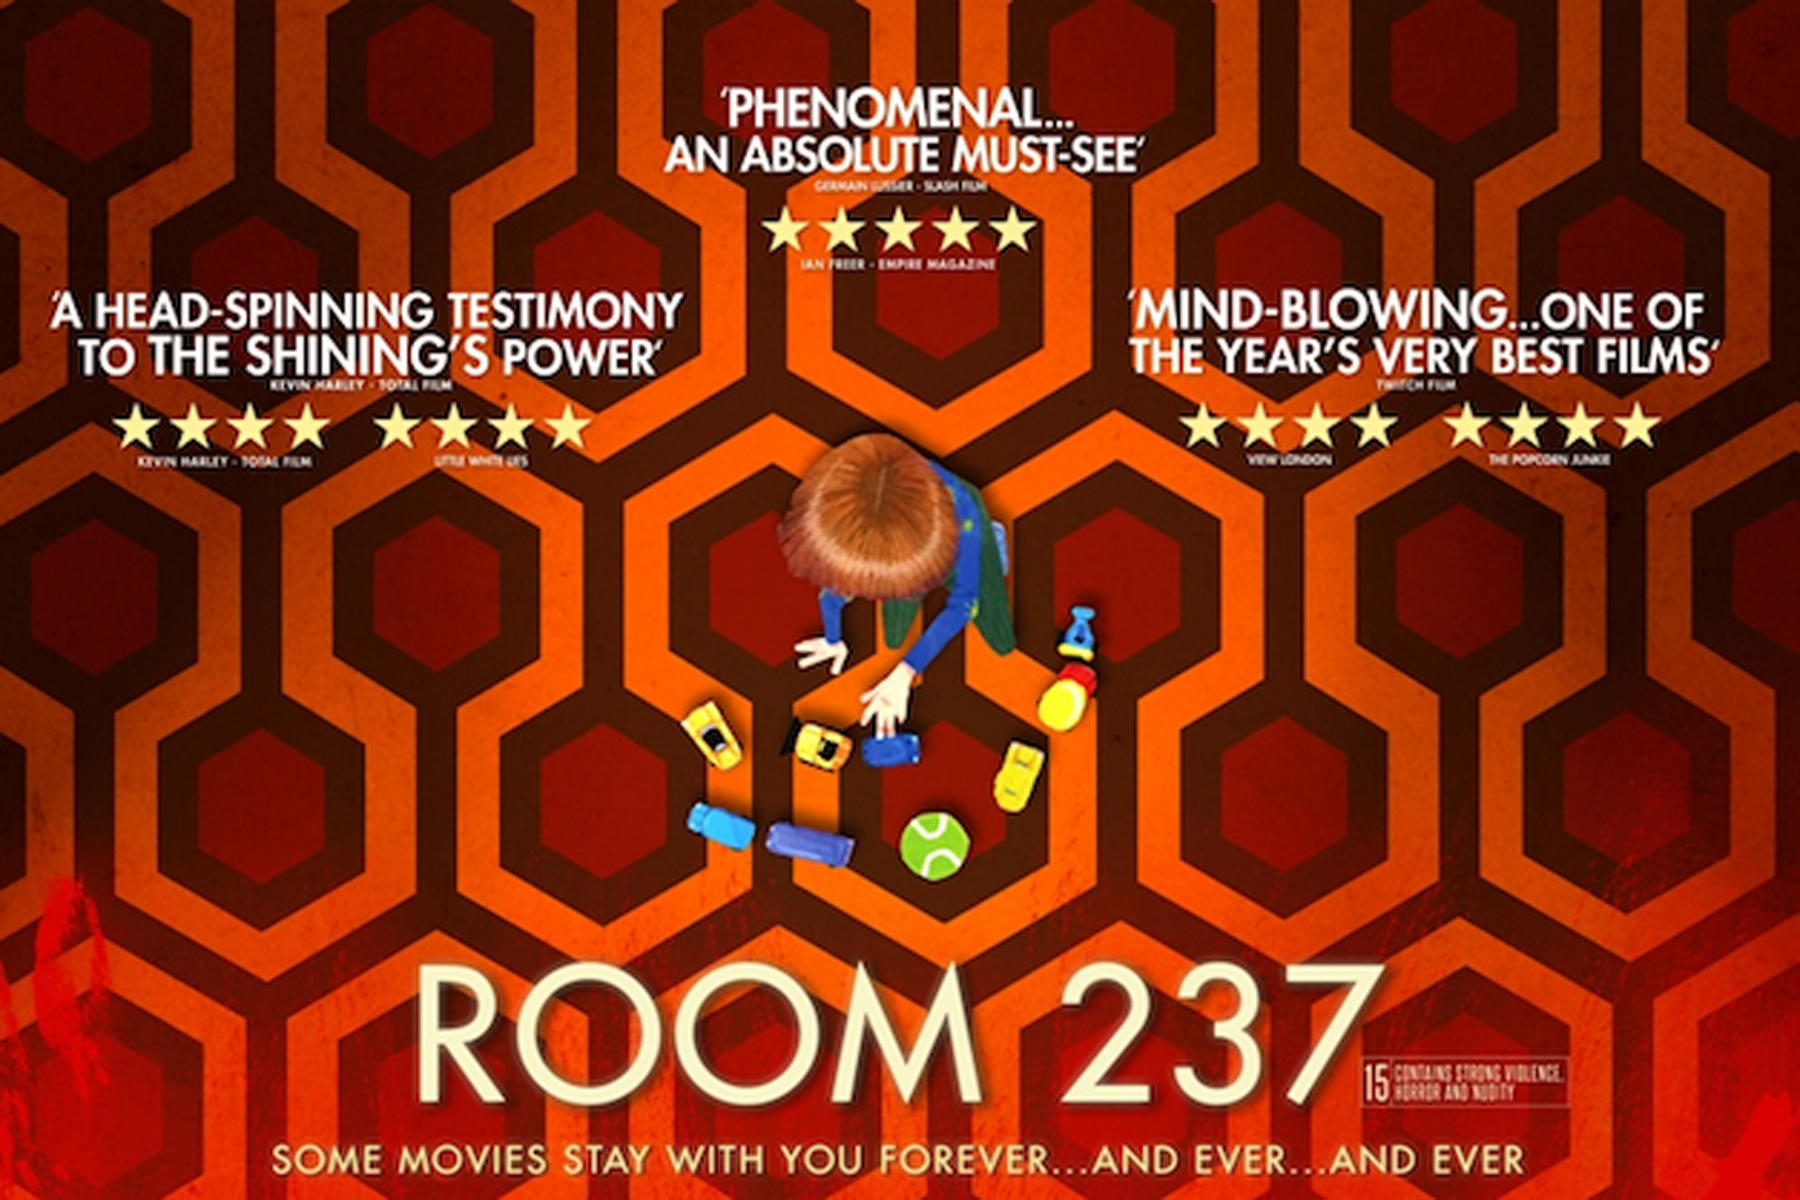 Room 237 Symbolism Of The Holocaust In Horror Movie The